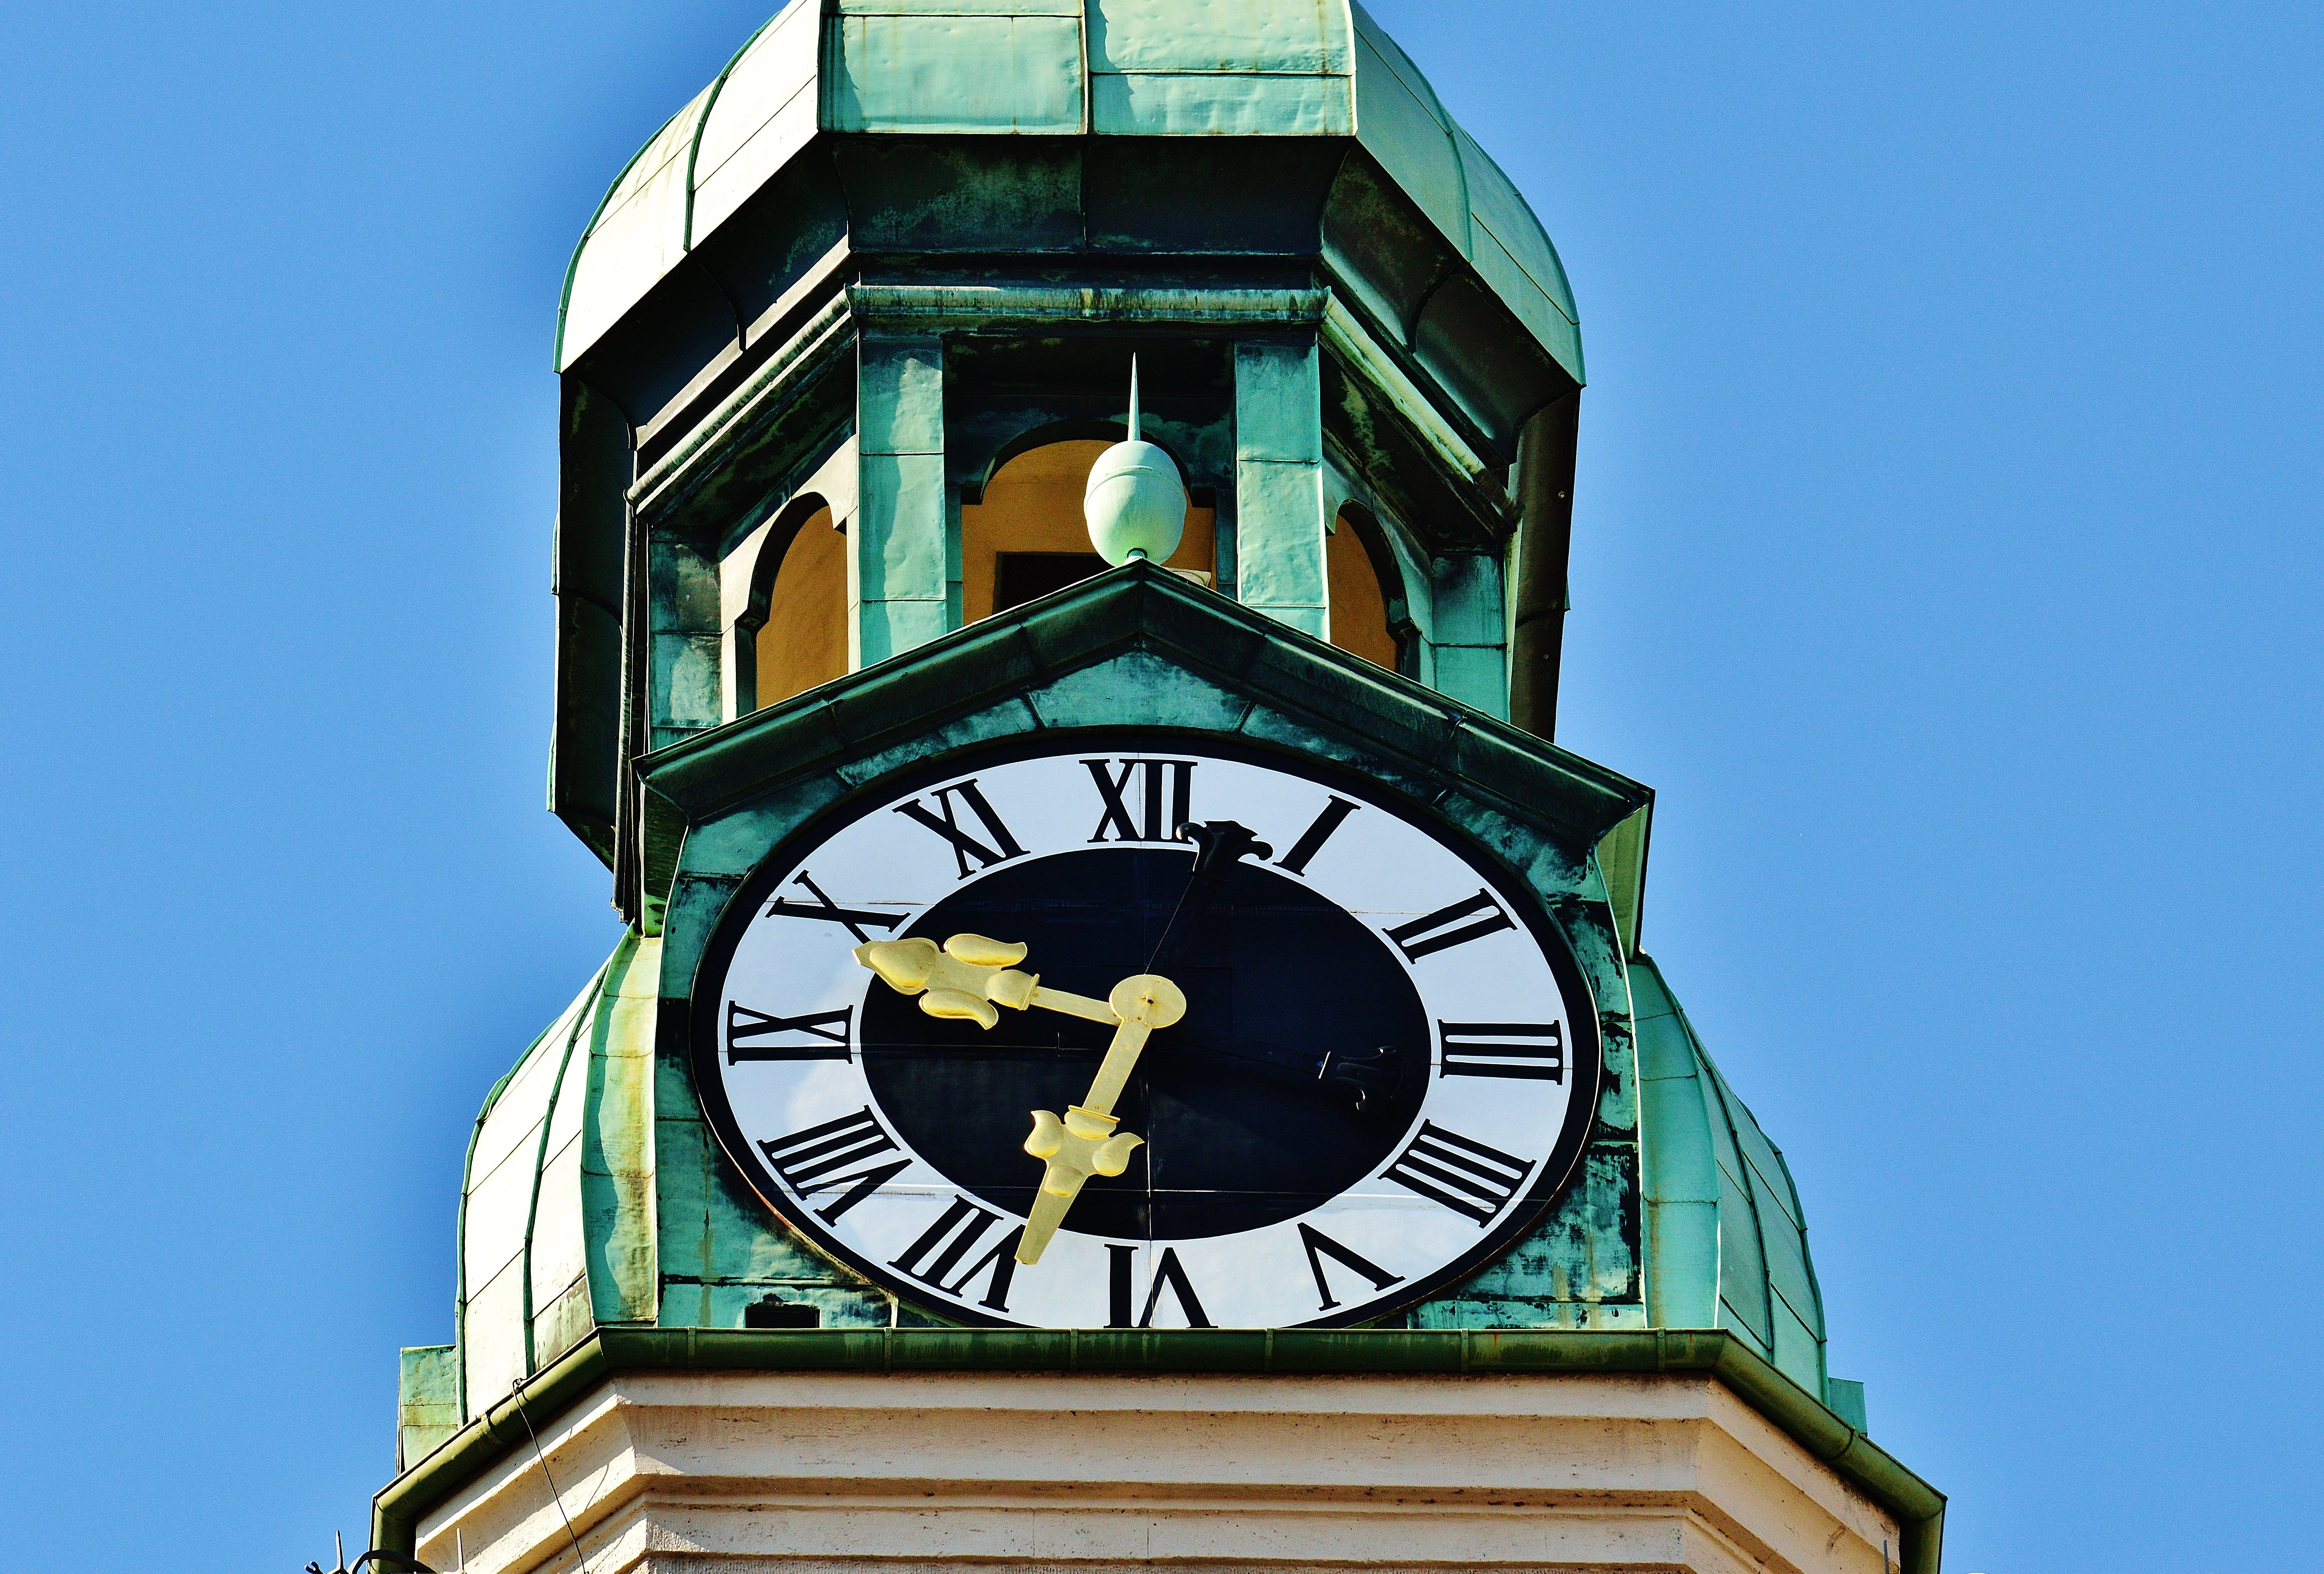 Tower Clock Under Blue Sky during Daytime